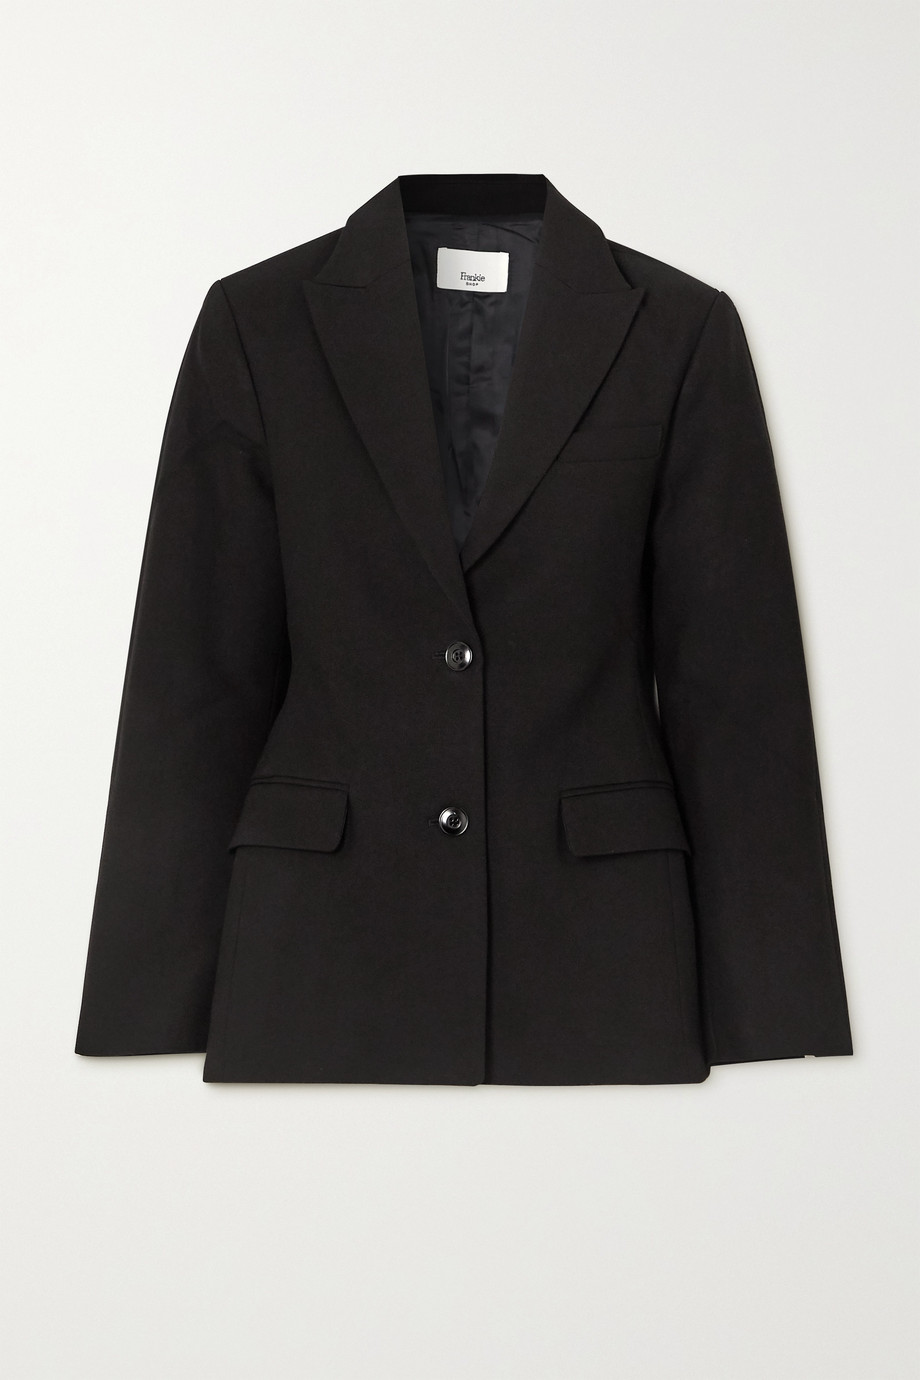 FRANKIE SHOP Cotton blazer